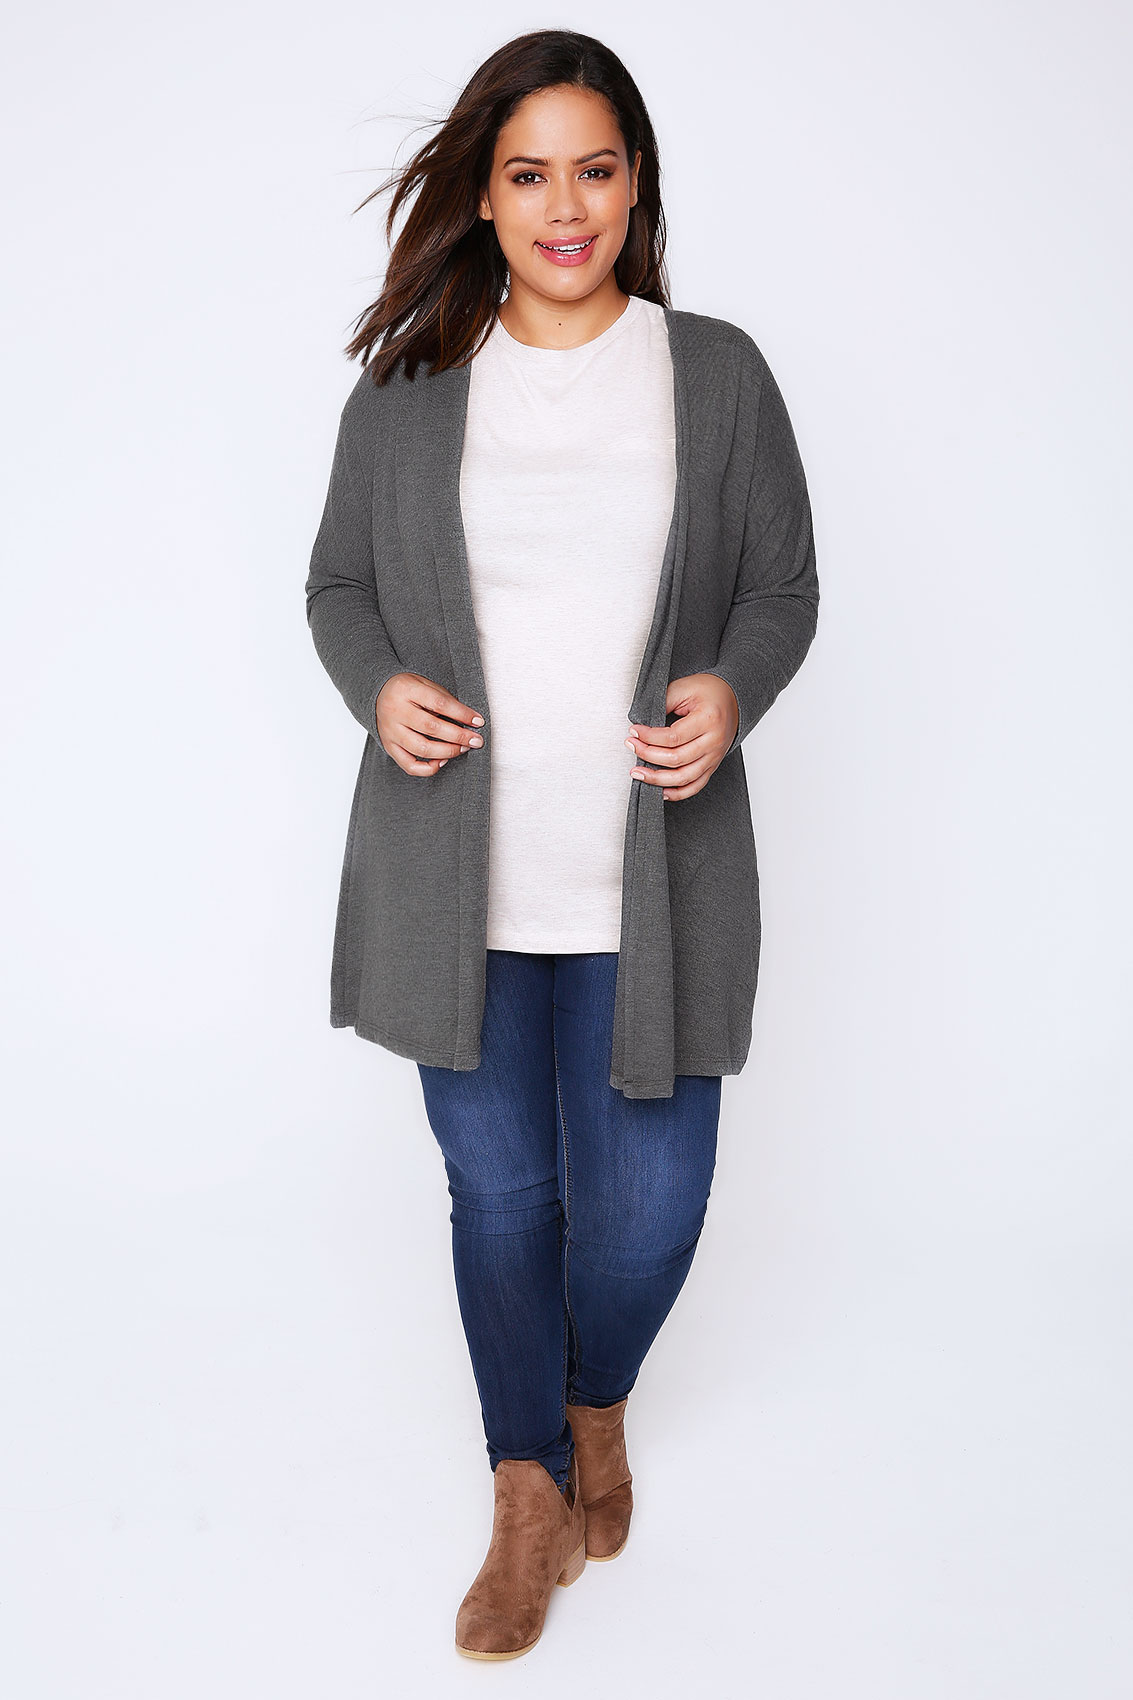 Layer this soft versatile long cardigan by Goodnight Macaroon over a polished blouse or casual top for fashionable, cozy-chic outfit! 'Aiko' Basic Soft Wrap Thin Long Cardigan Layer this soft versatile long cardigan by Goodnight Macaroon over a polished blouse or casual top for fashionable, cozy-chic outfit!5/5(7).